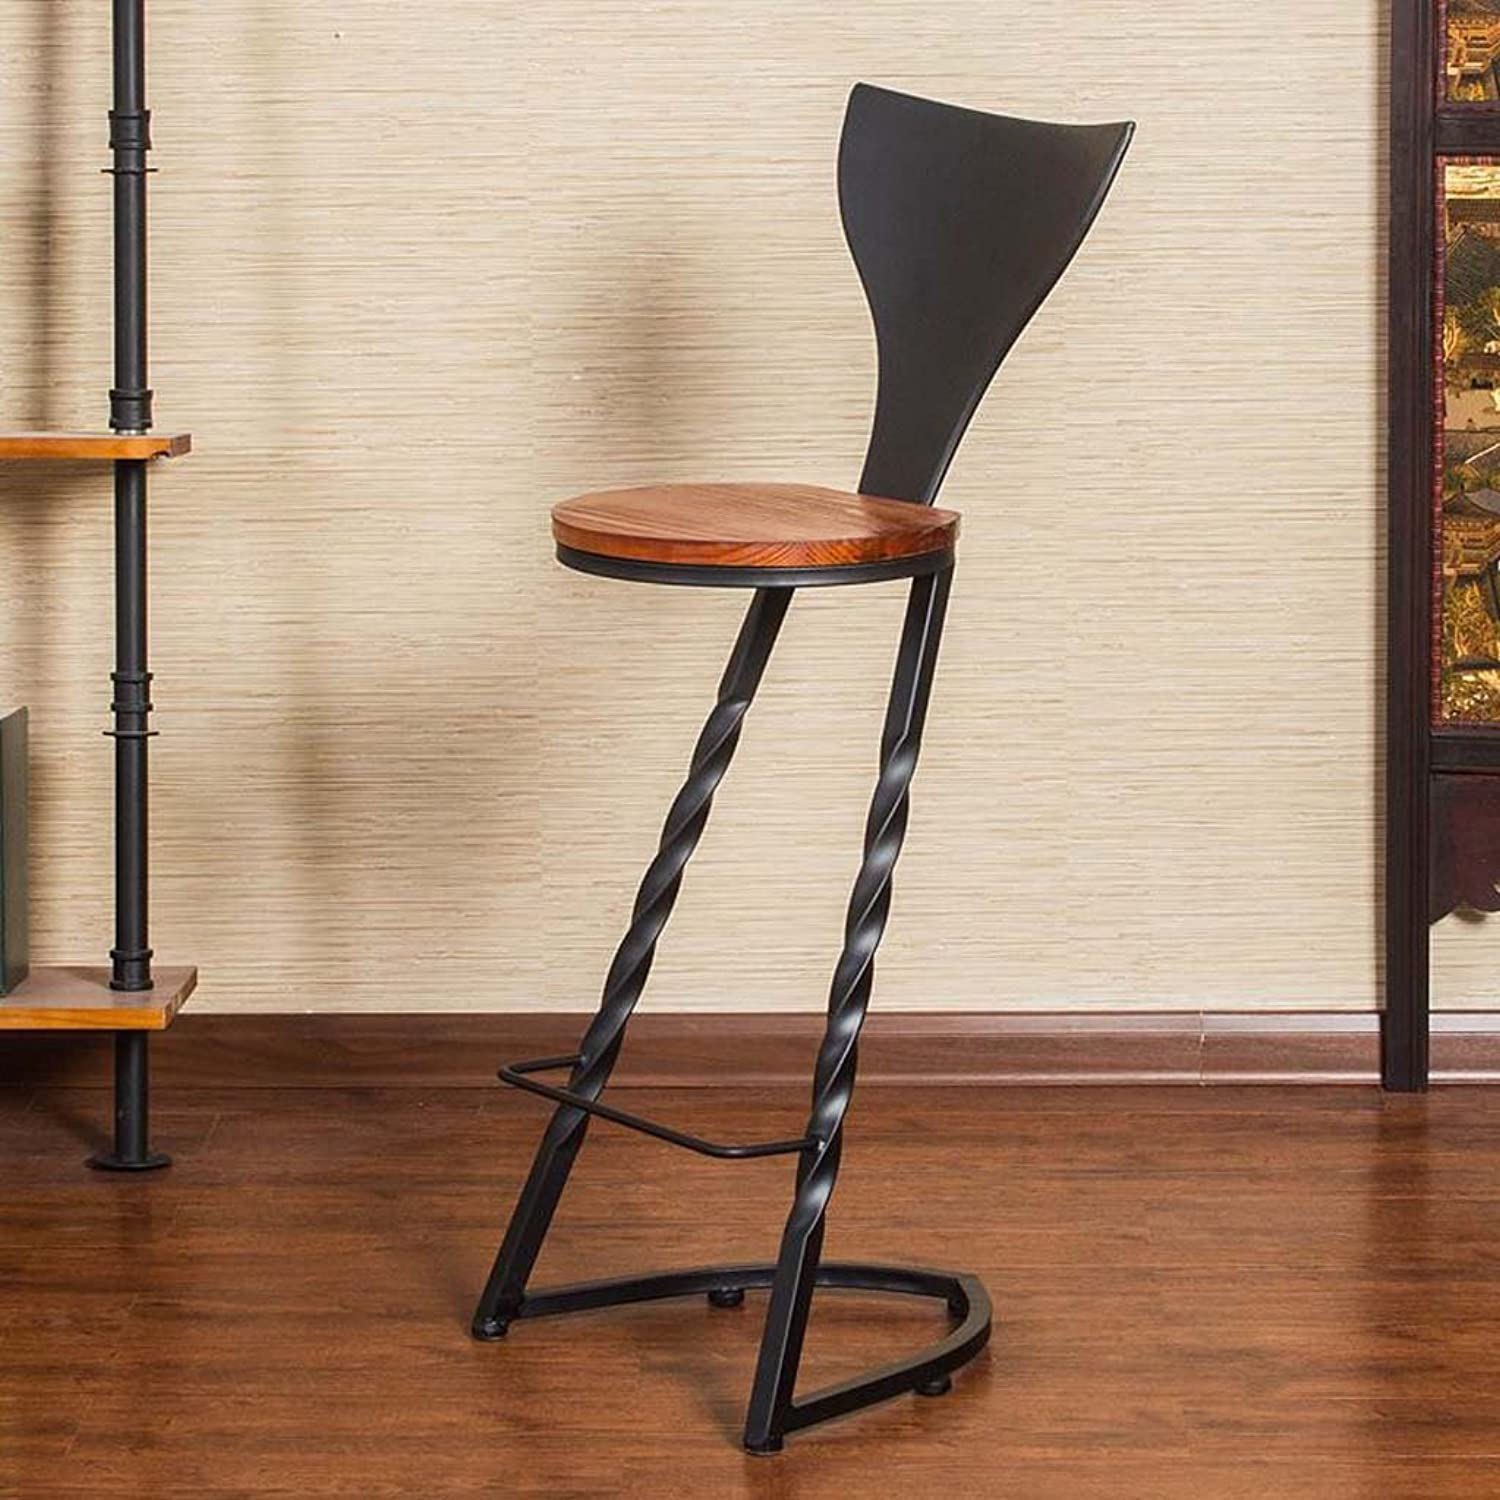 GSHWJS American Wrought Iron Bar Stool High Chair Dining Chair Cafe Bar Stool Put The Stool